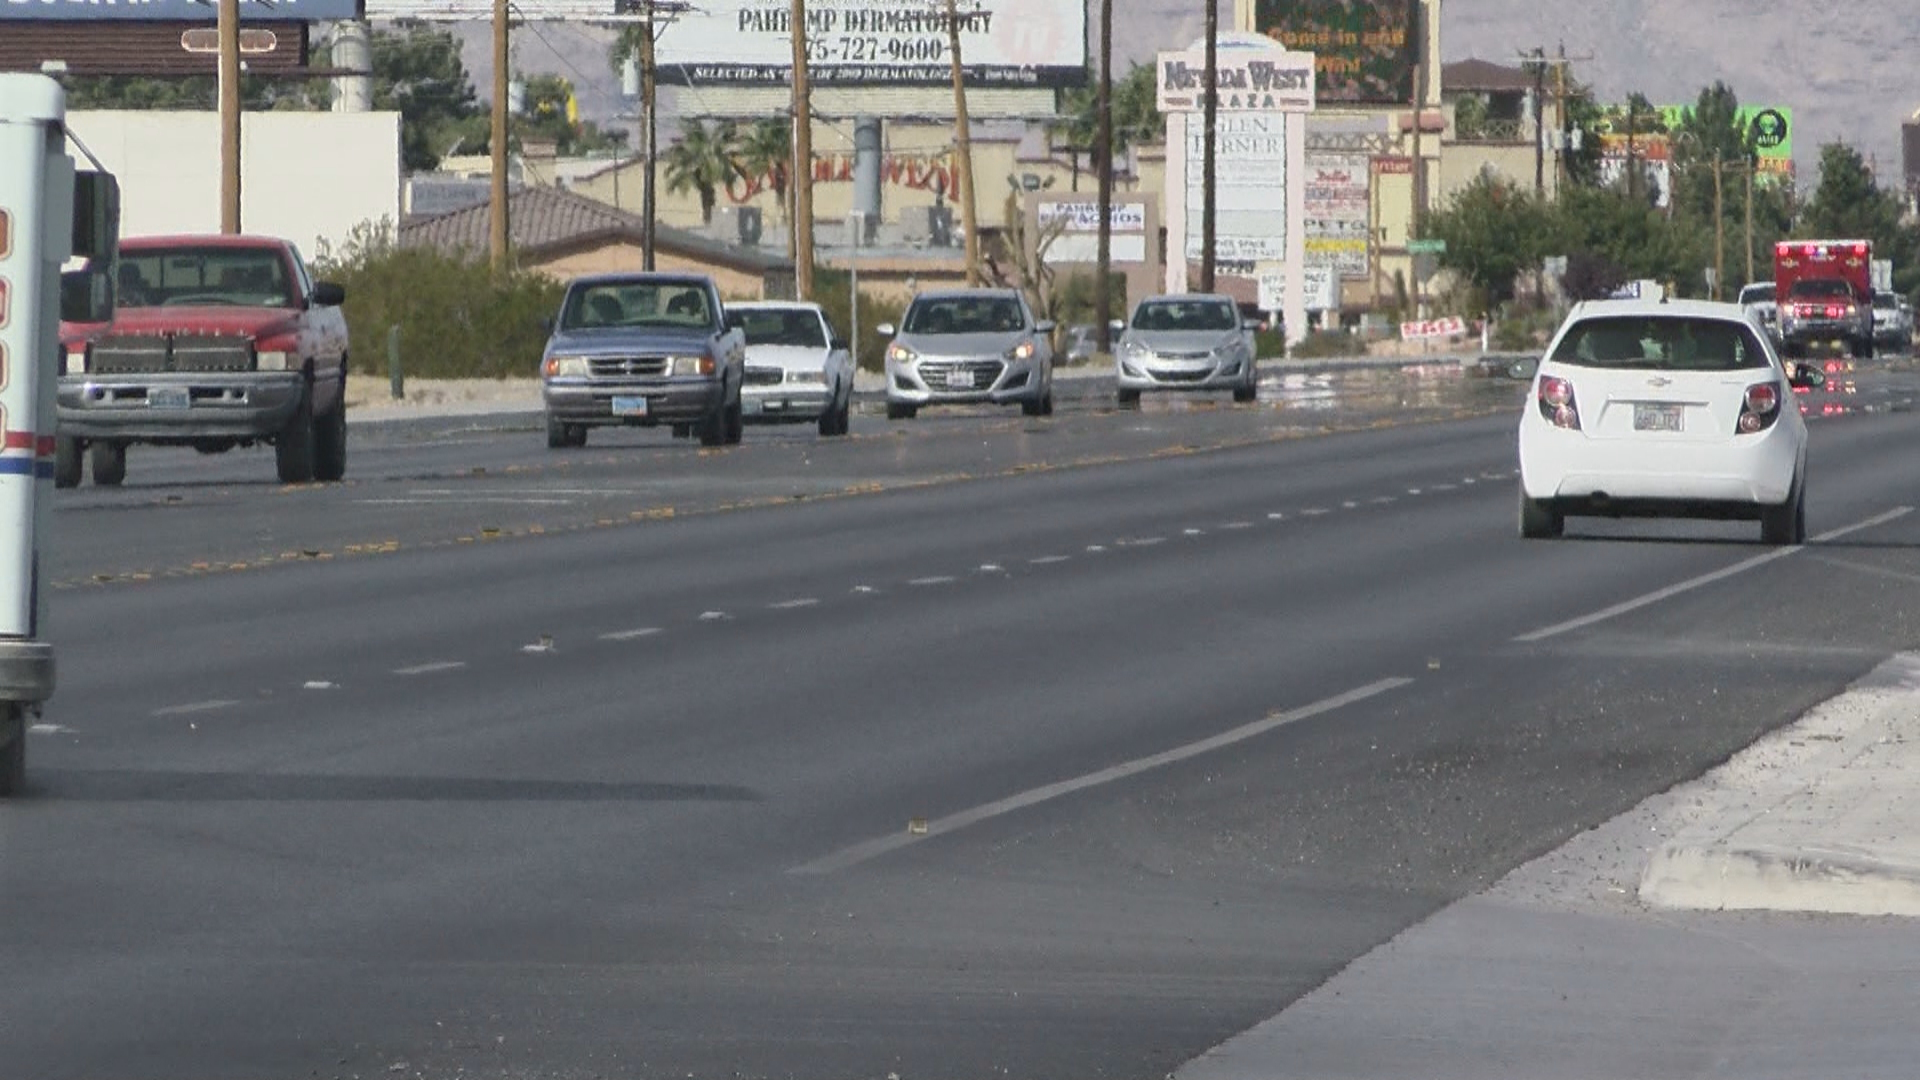 A Las Vegas man, identified by family as Roy McClellan, survived the mass shooting in Las Vegas, only to be killed a few weeks later by a hit-and-run driver on Homestead and Highway 160 in Pahrump. (KSNV)